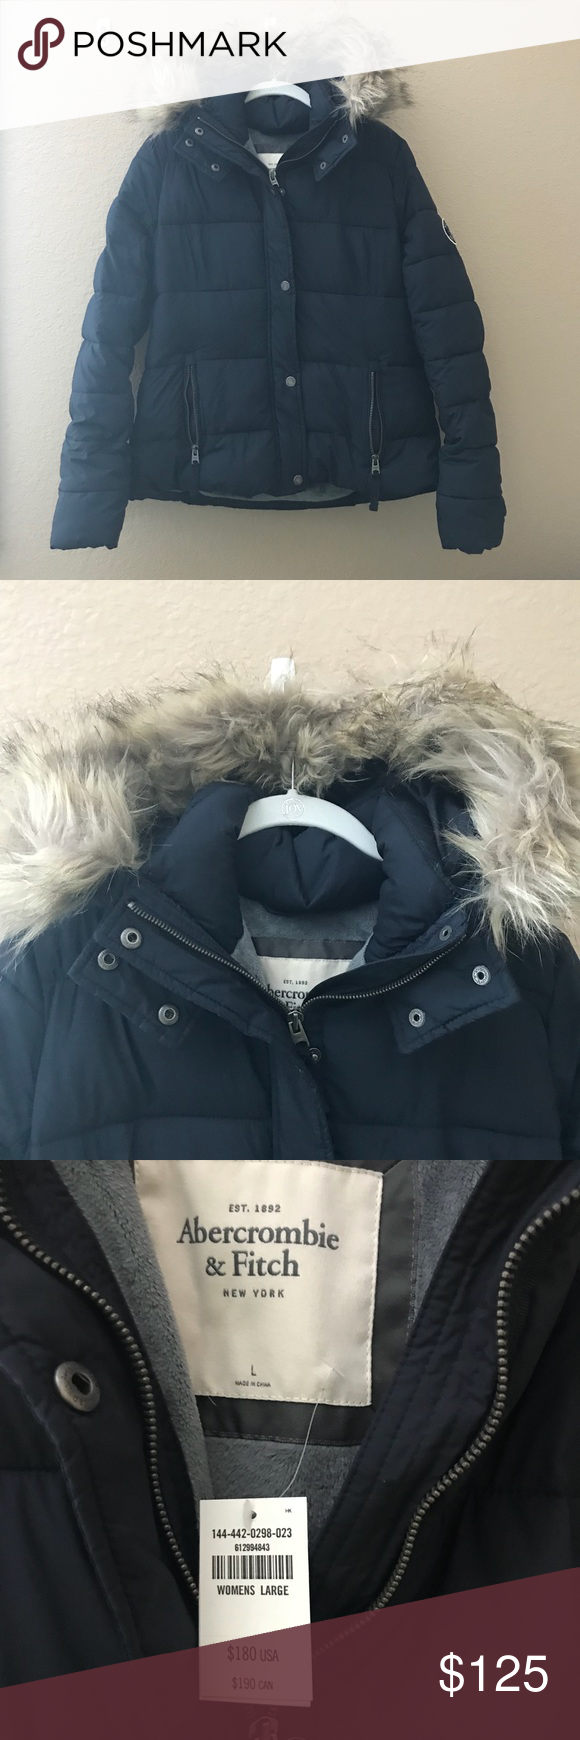 New Abercrombie Fitch Puffer Jacket Jackets Puffer Jackets Clothes Design [ 1740 x 580 Pixel ]